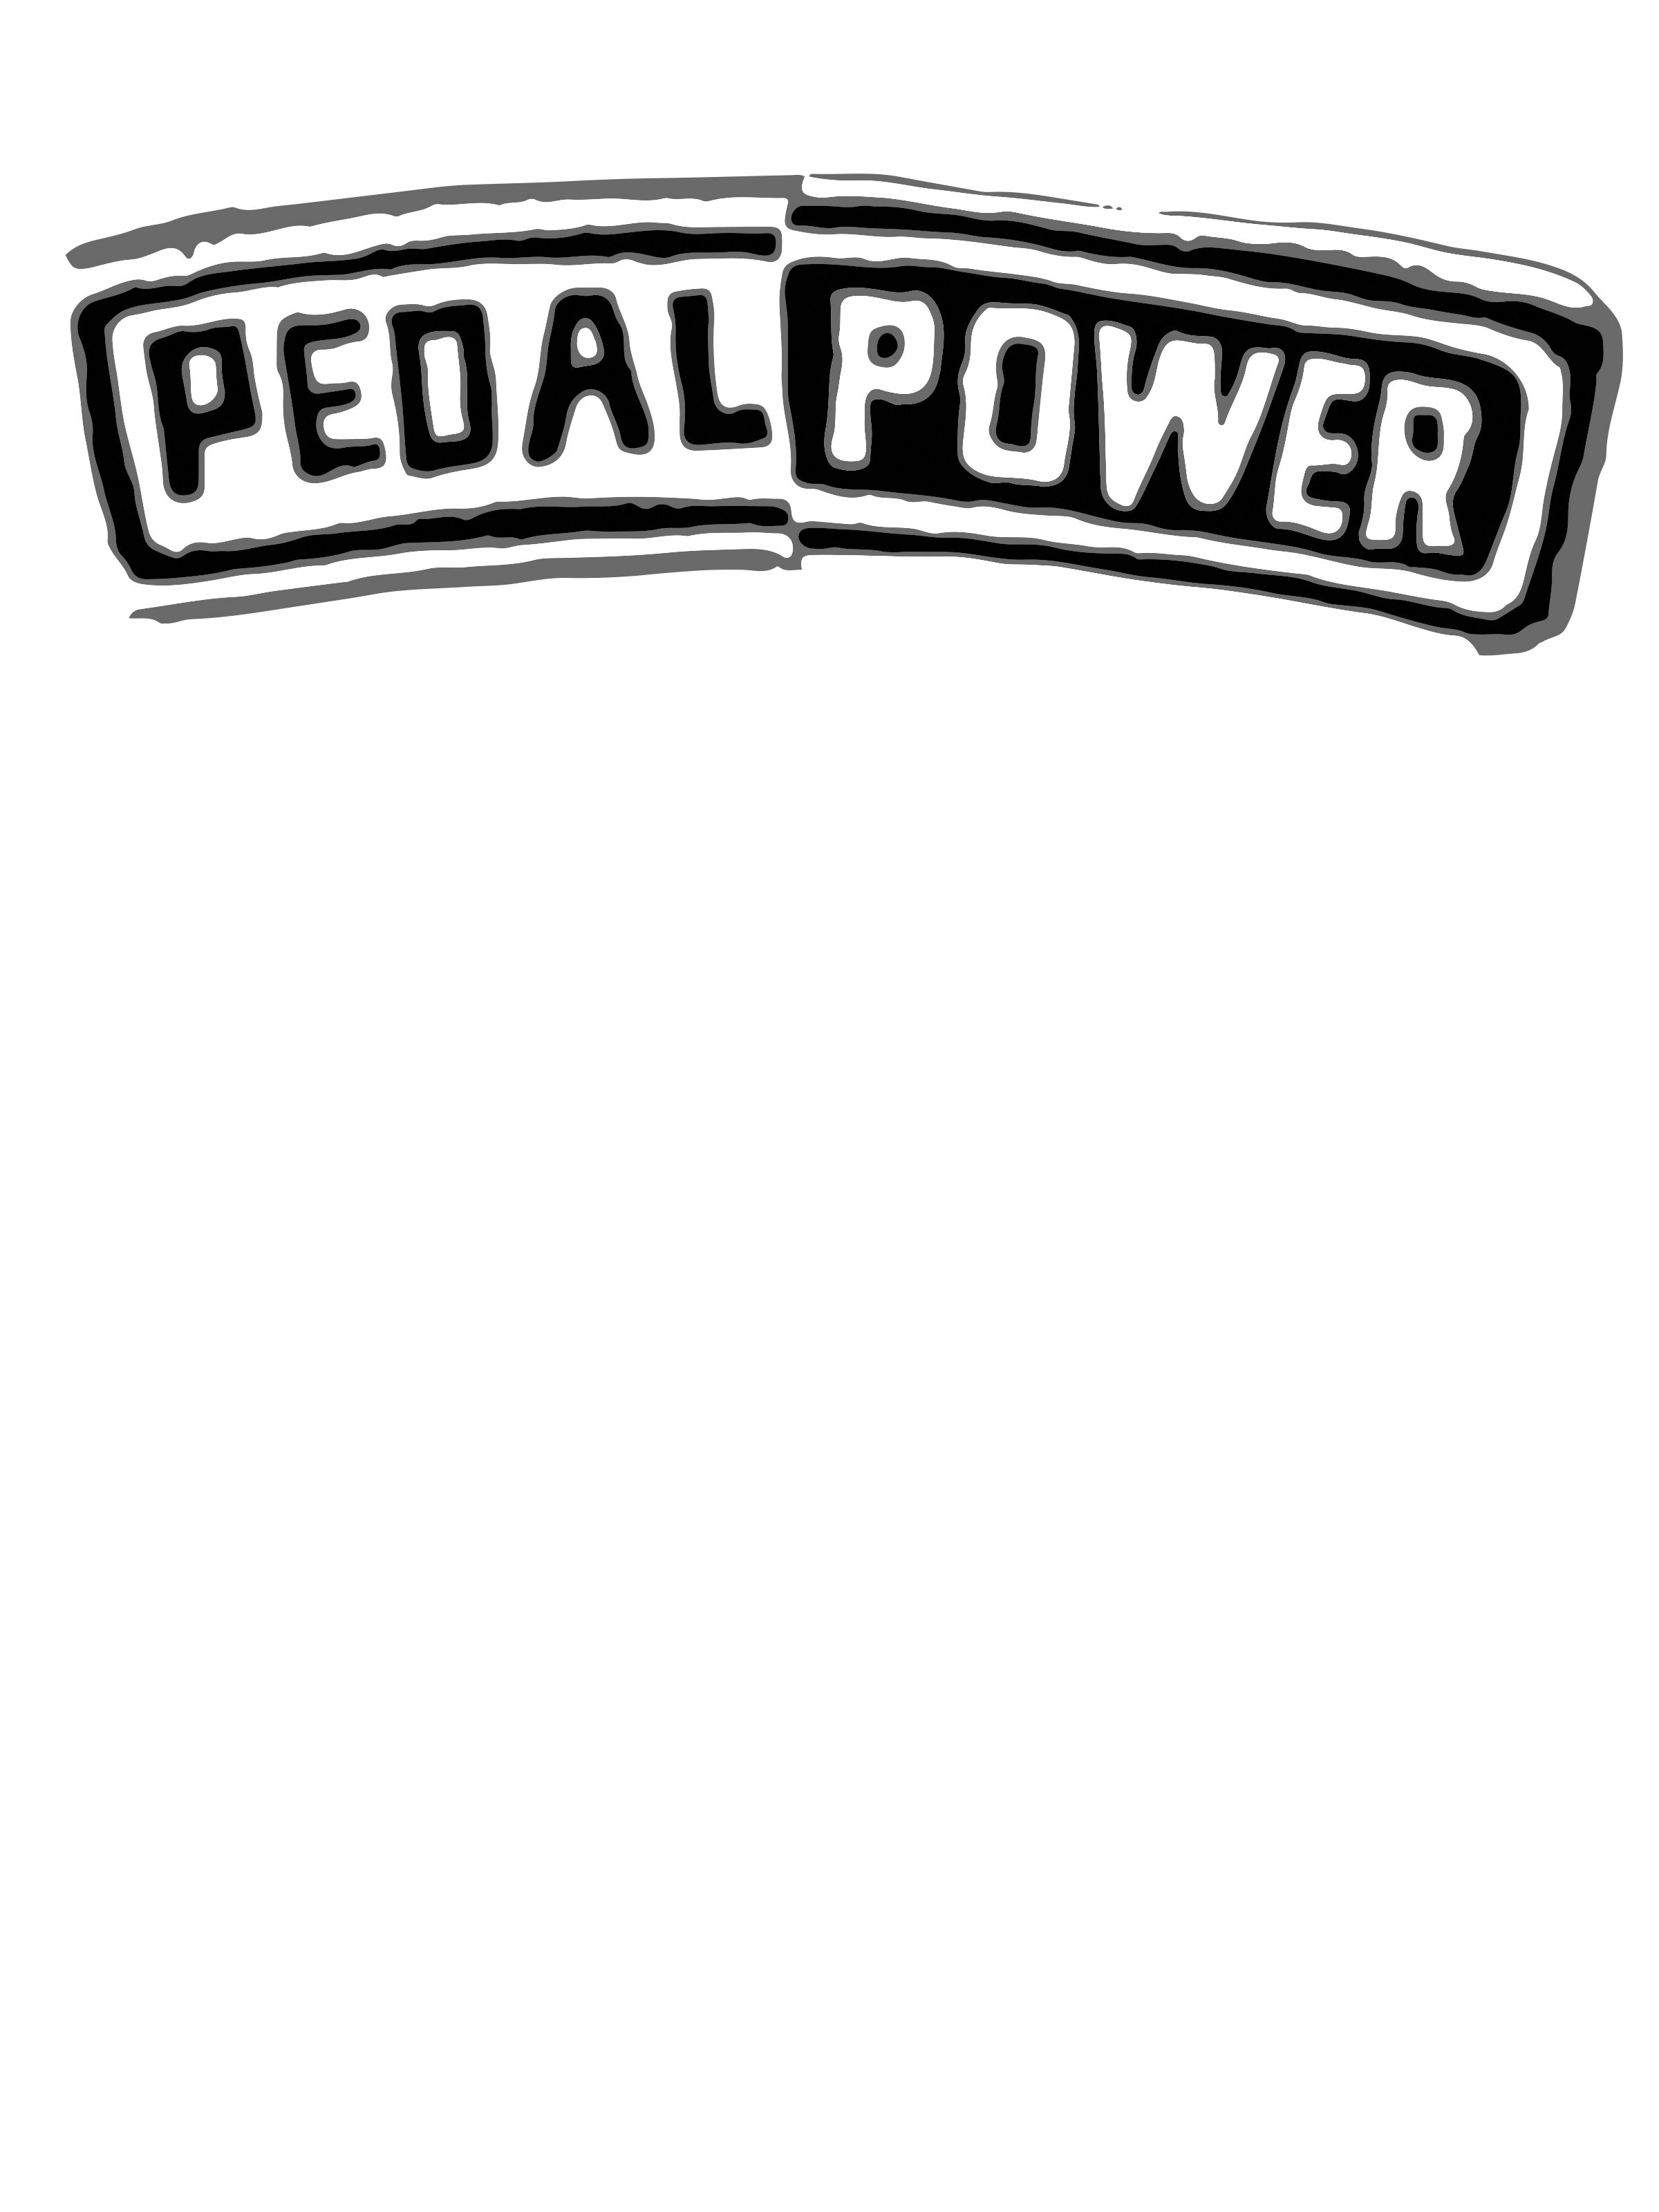 0110 – Pedal Power